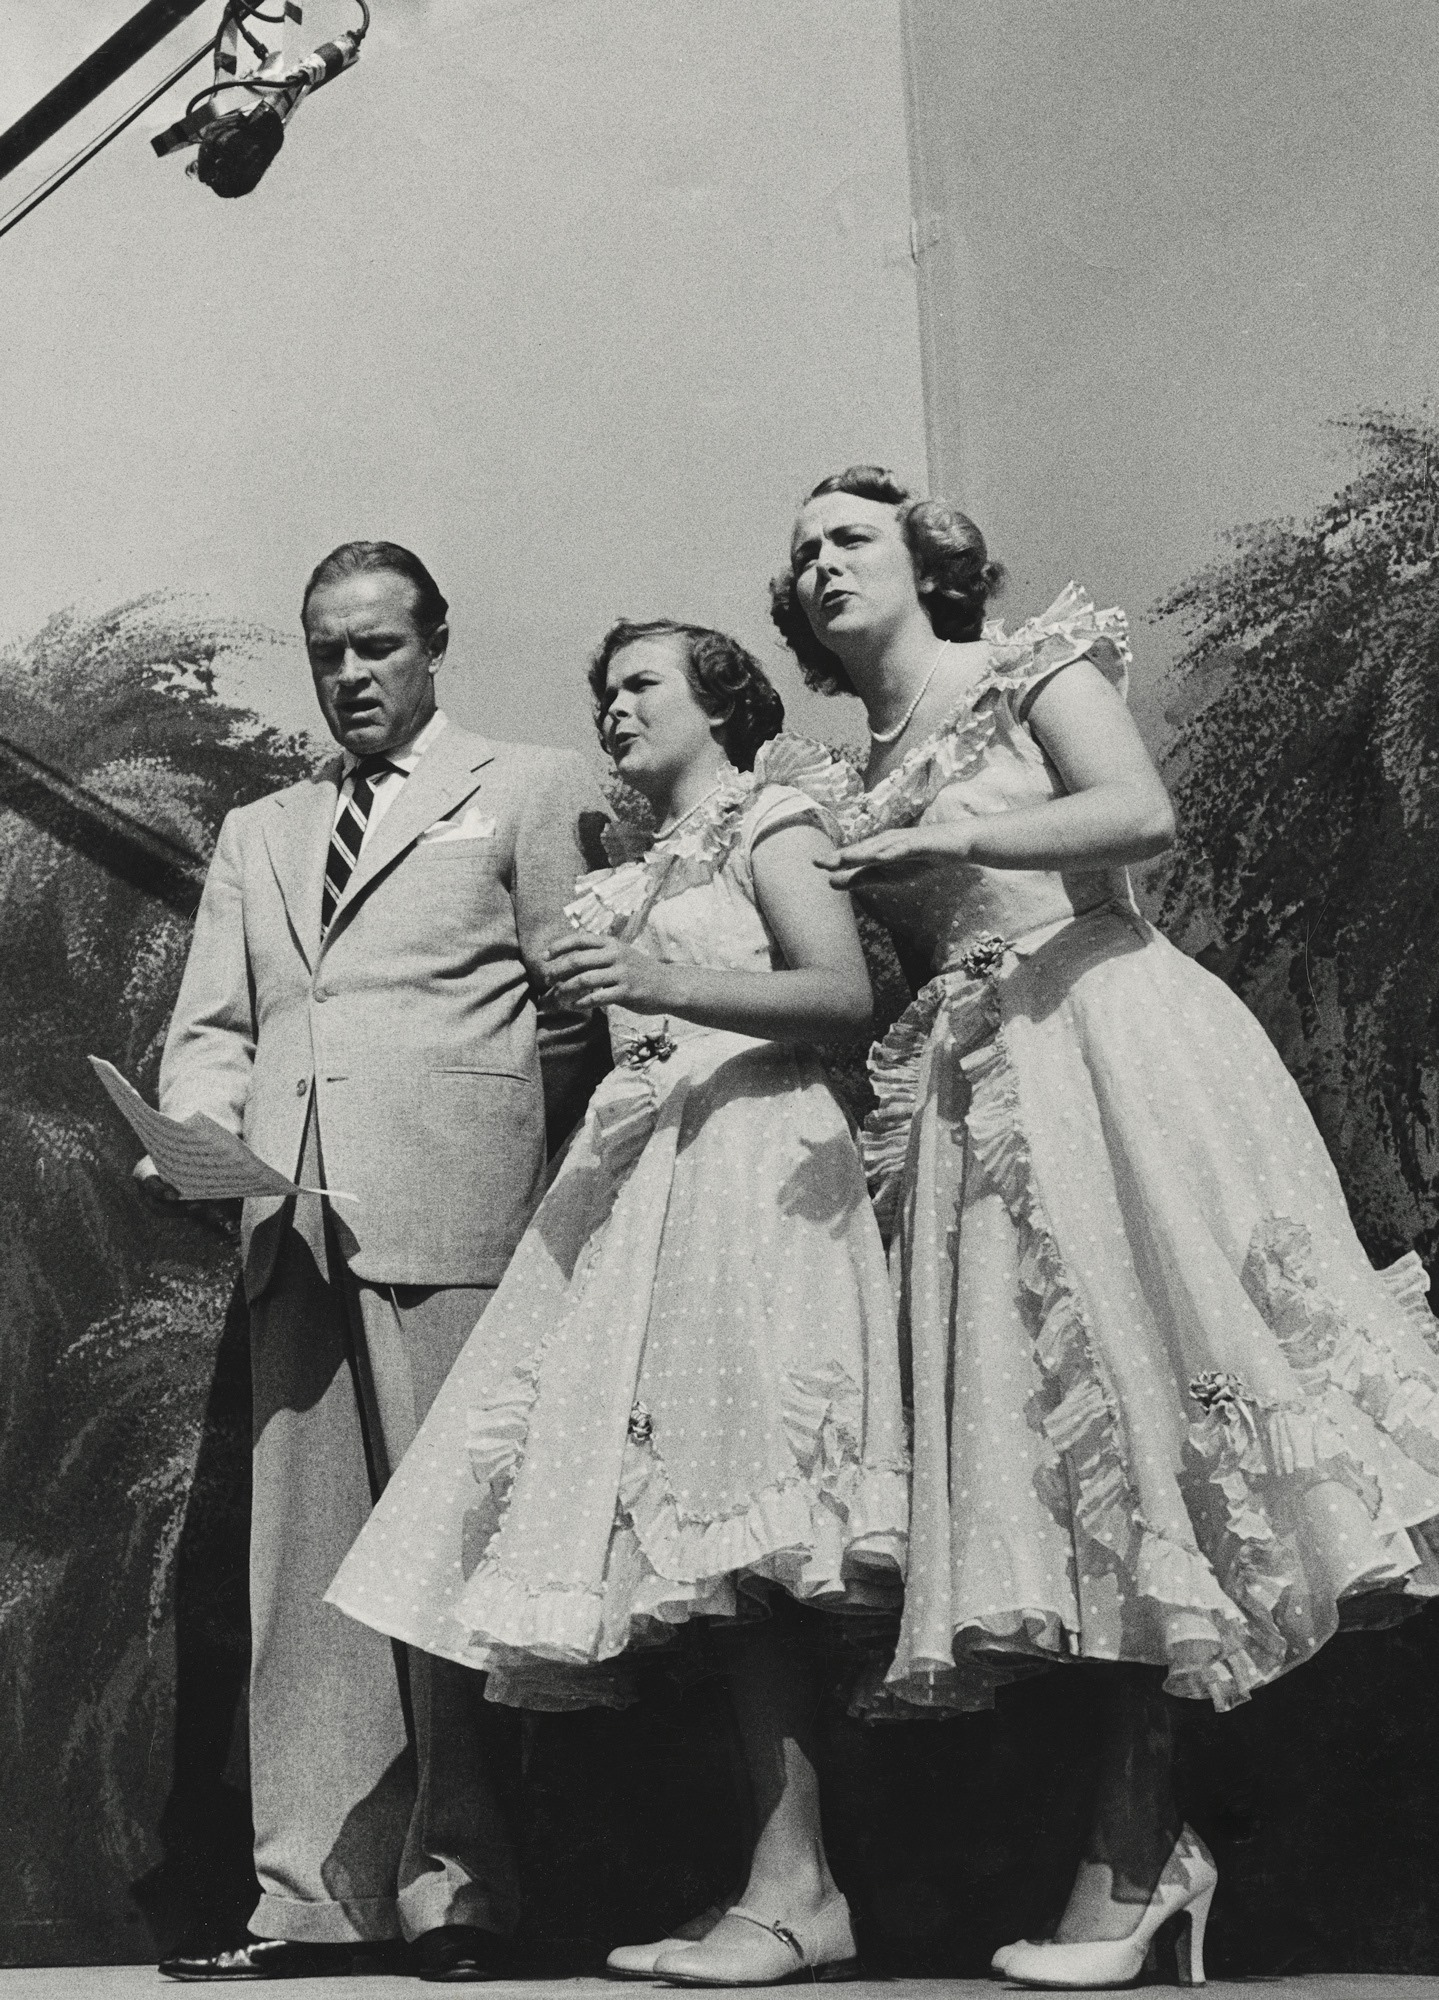 Bob Hope and The Bell Sisters in Four Star Revue (1950)